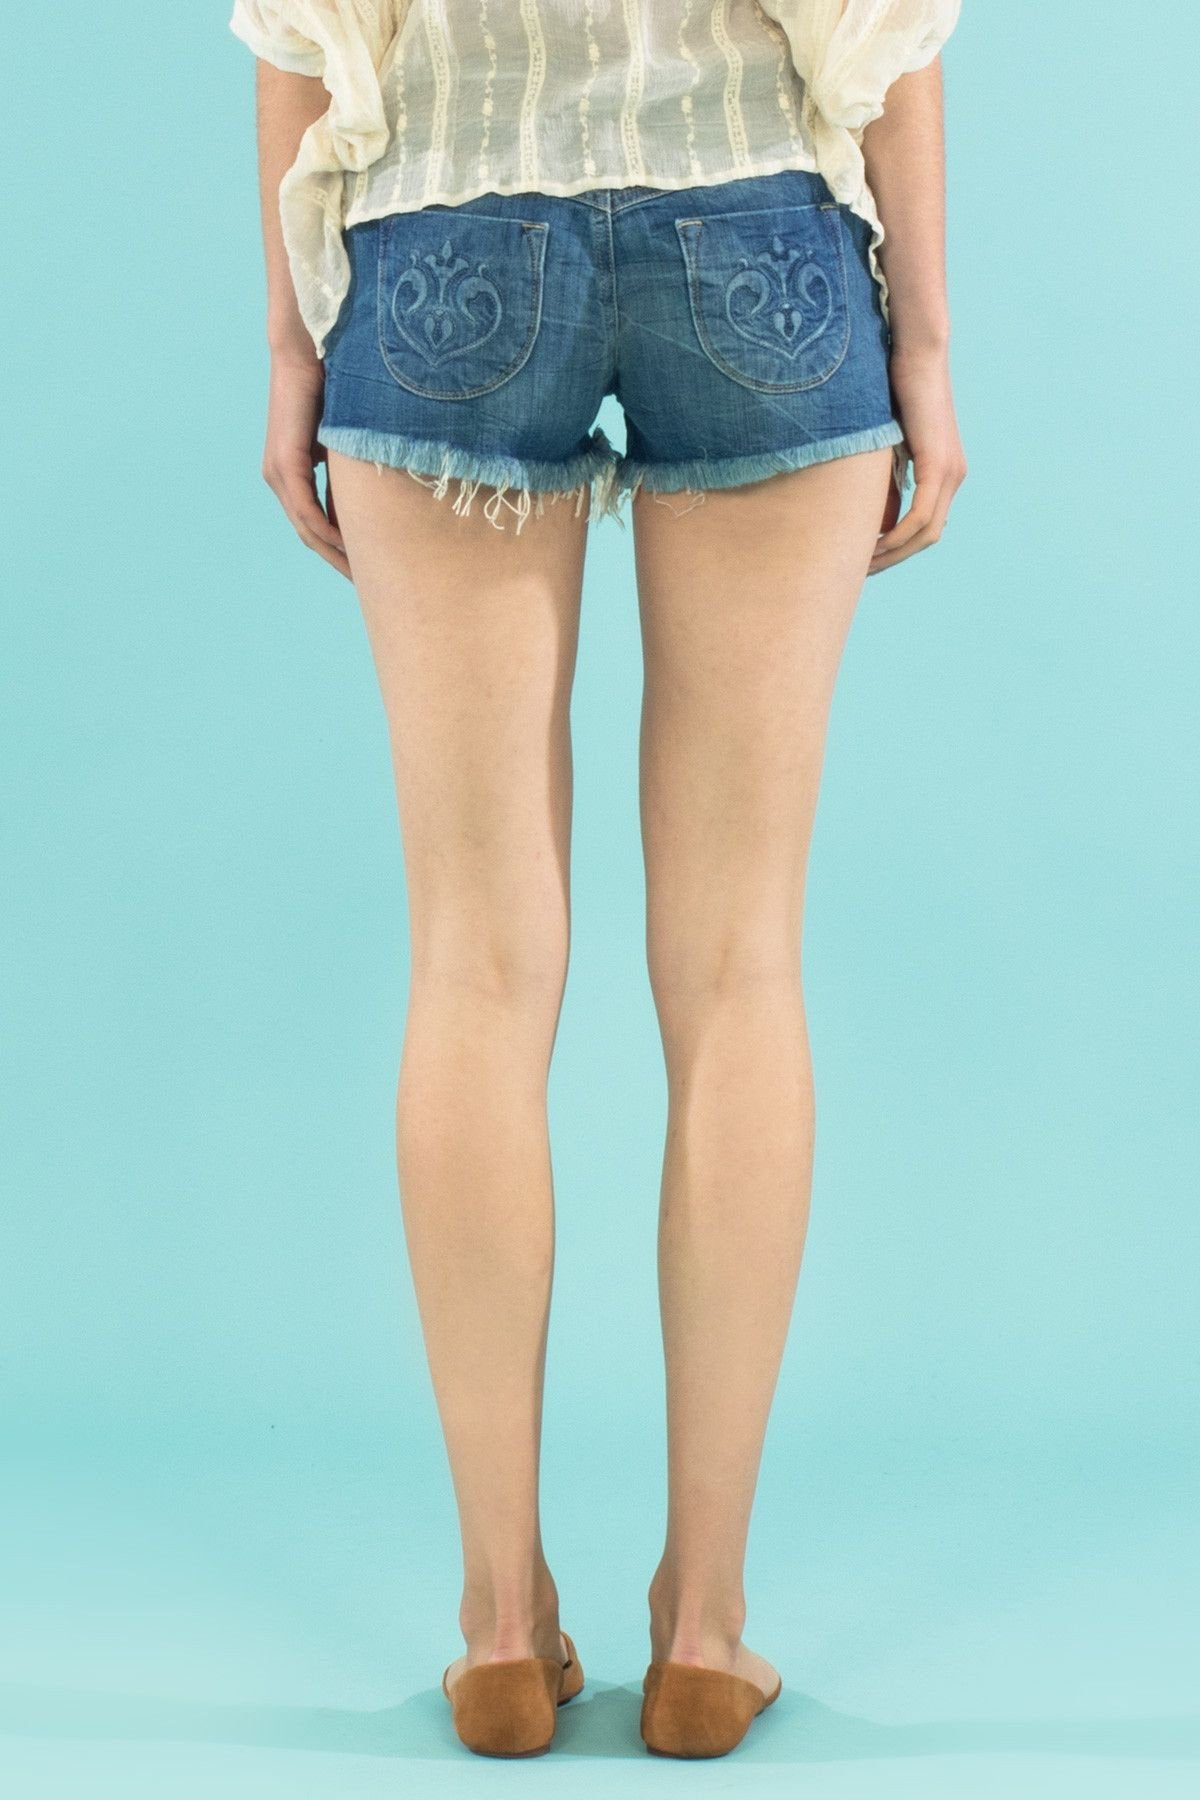 Siwy Camilla In Come Away With Me Shorts-Skirts & Shorts-Siwy Denim